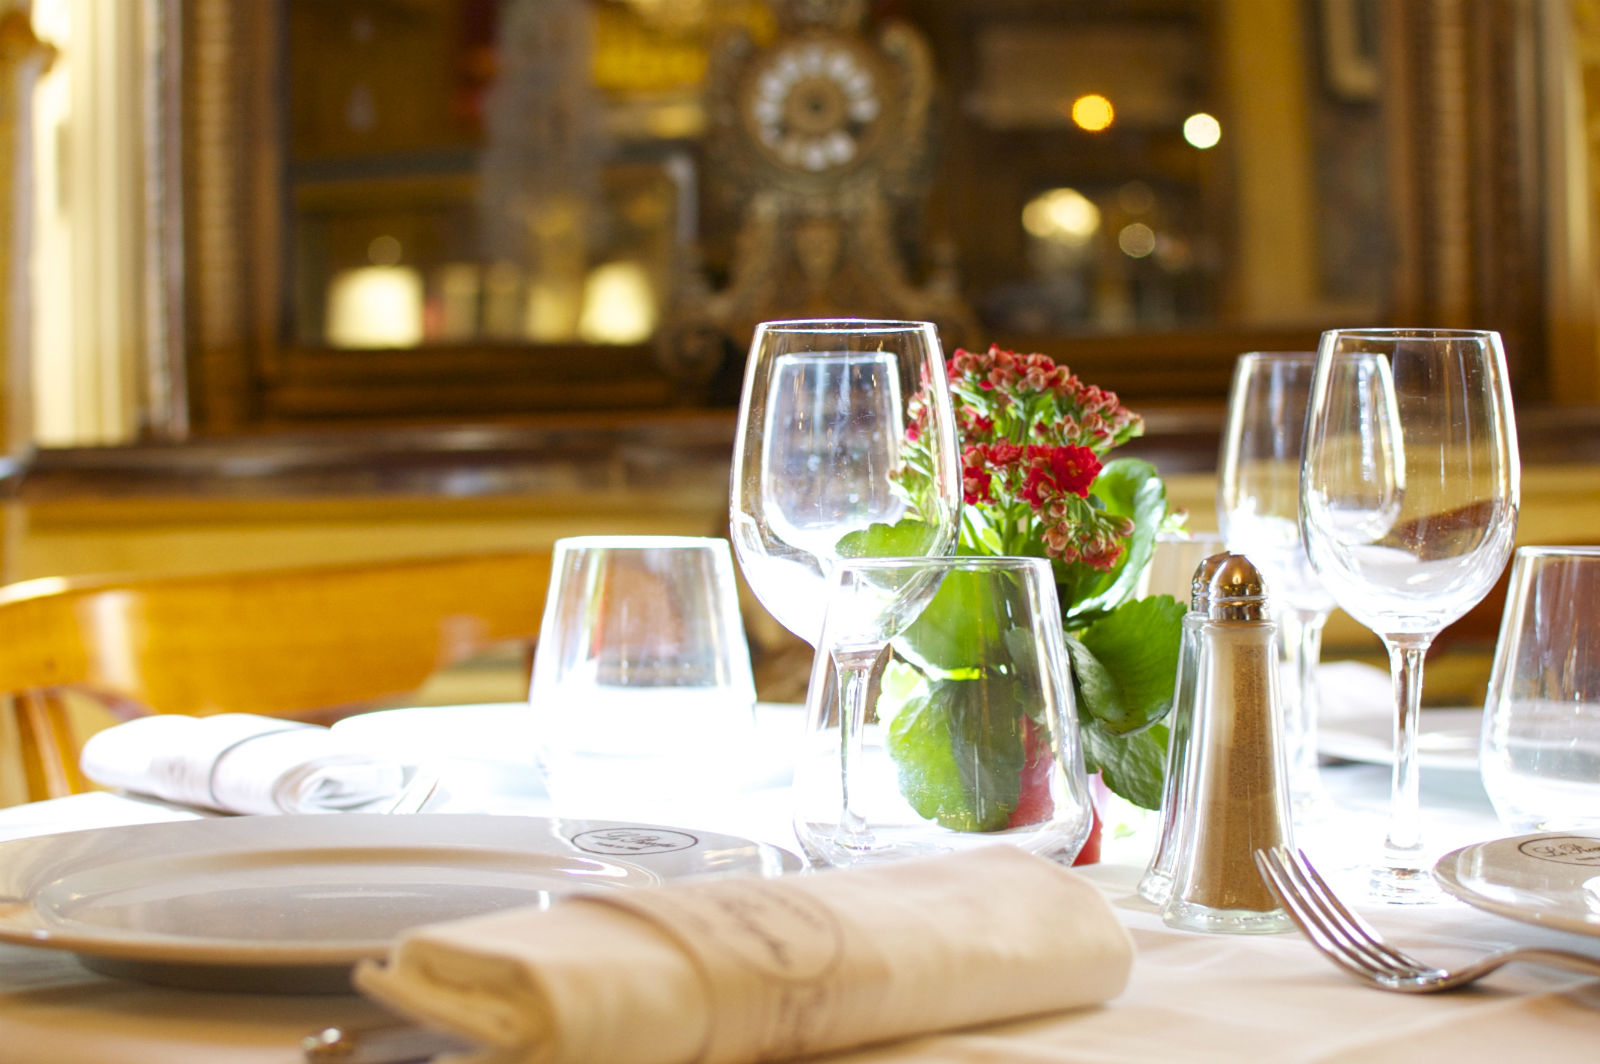 HiP Paris blog. A Paris dining experience with a side of French history at Le Procope. The epitome of Parisian elegance.